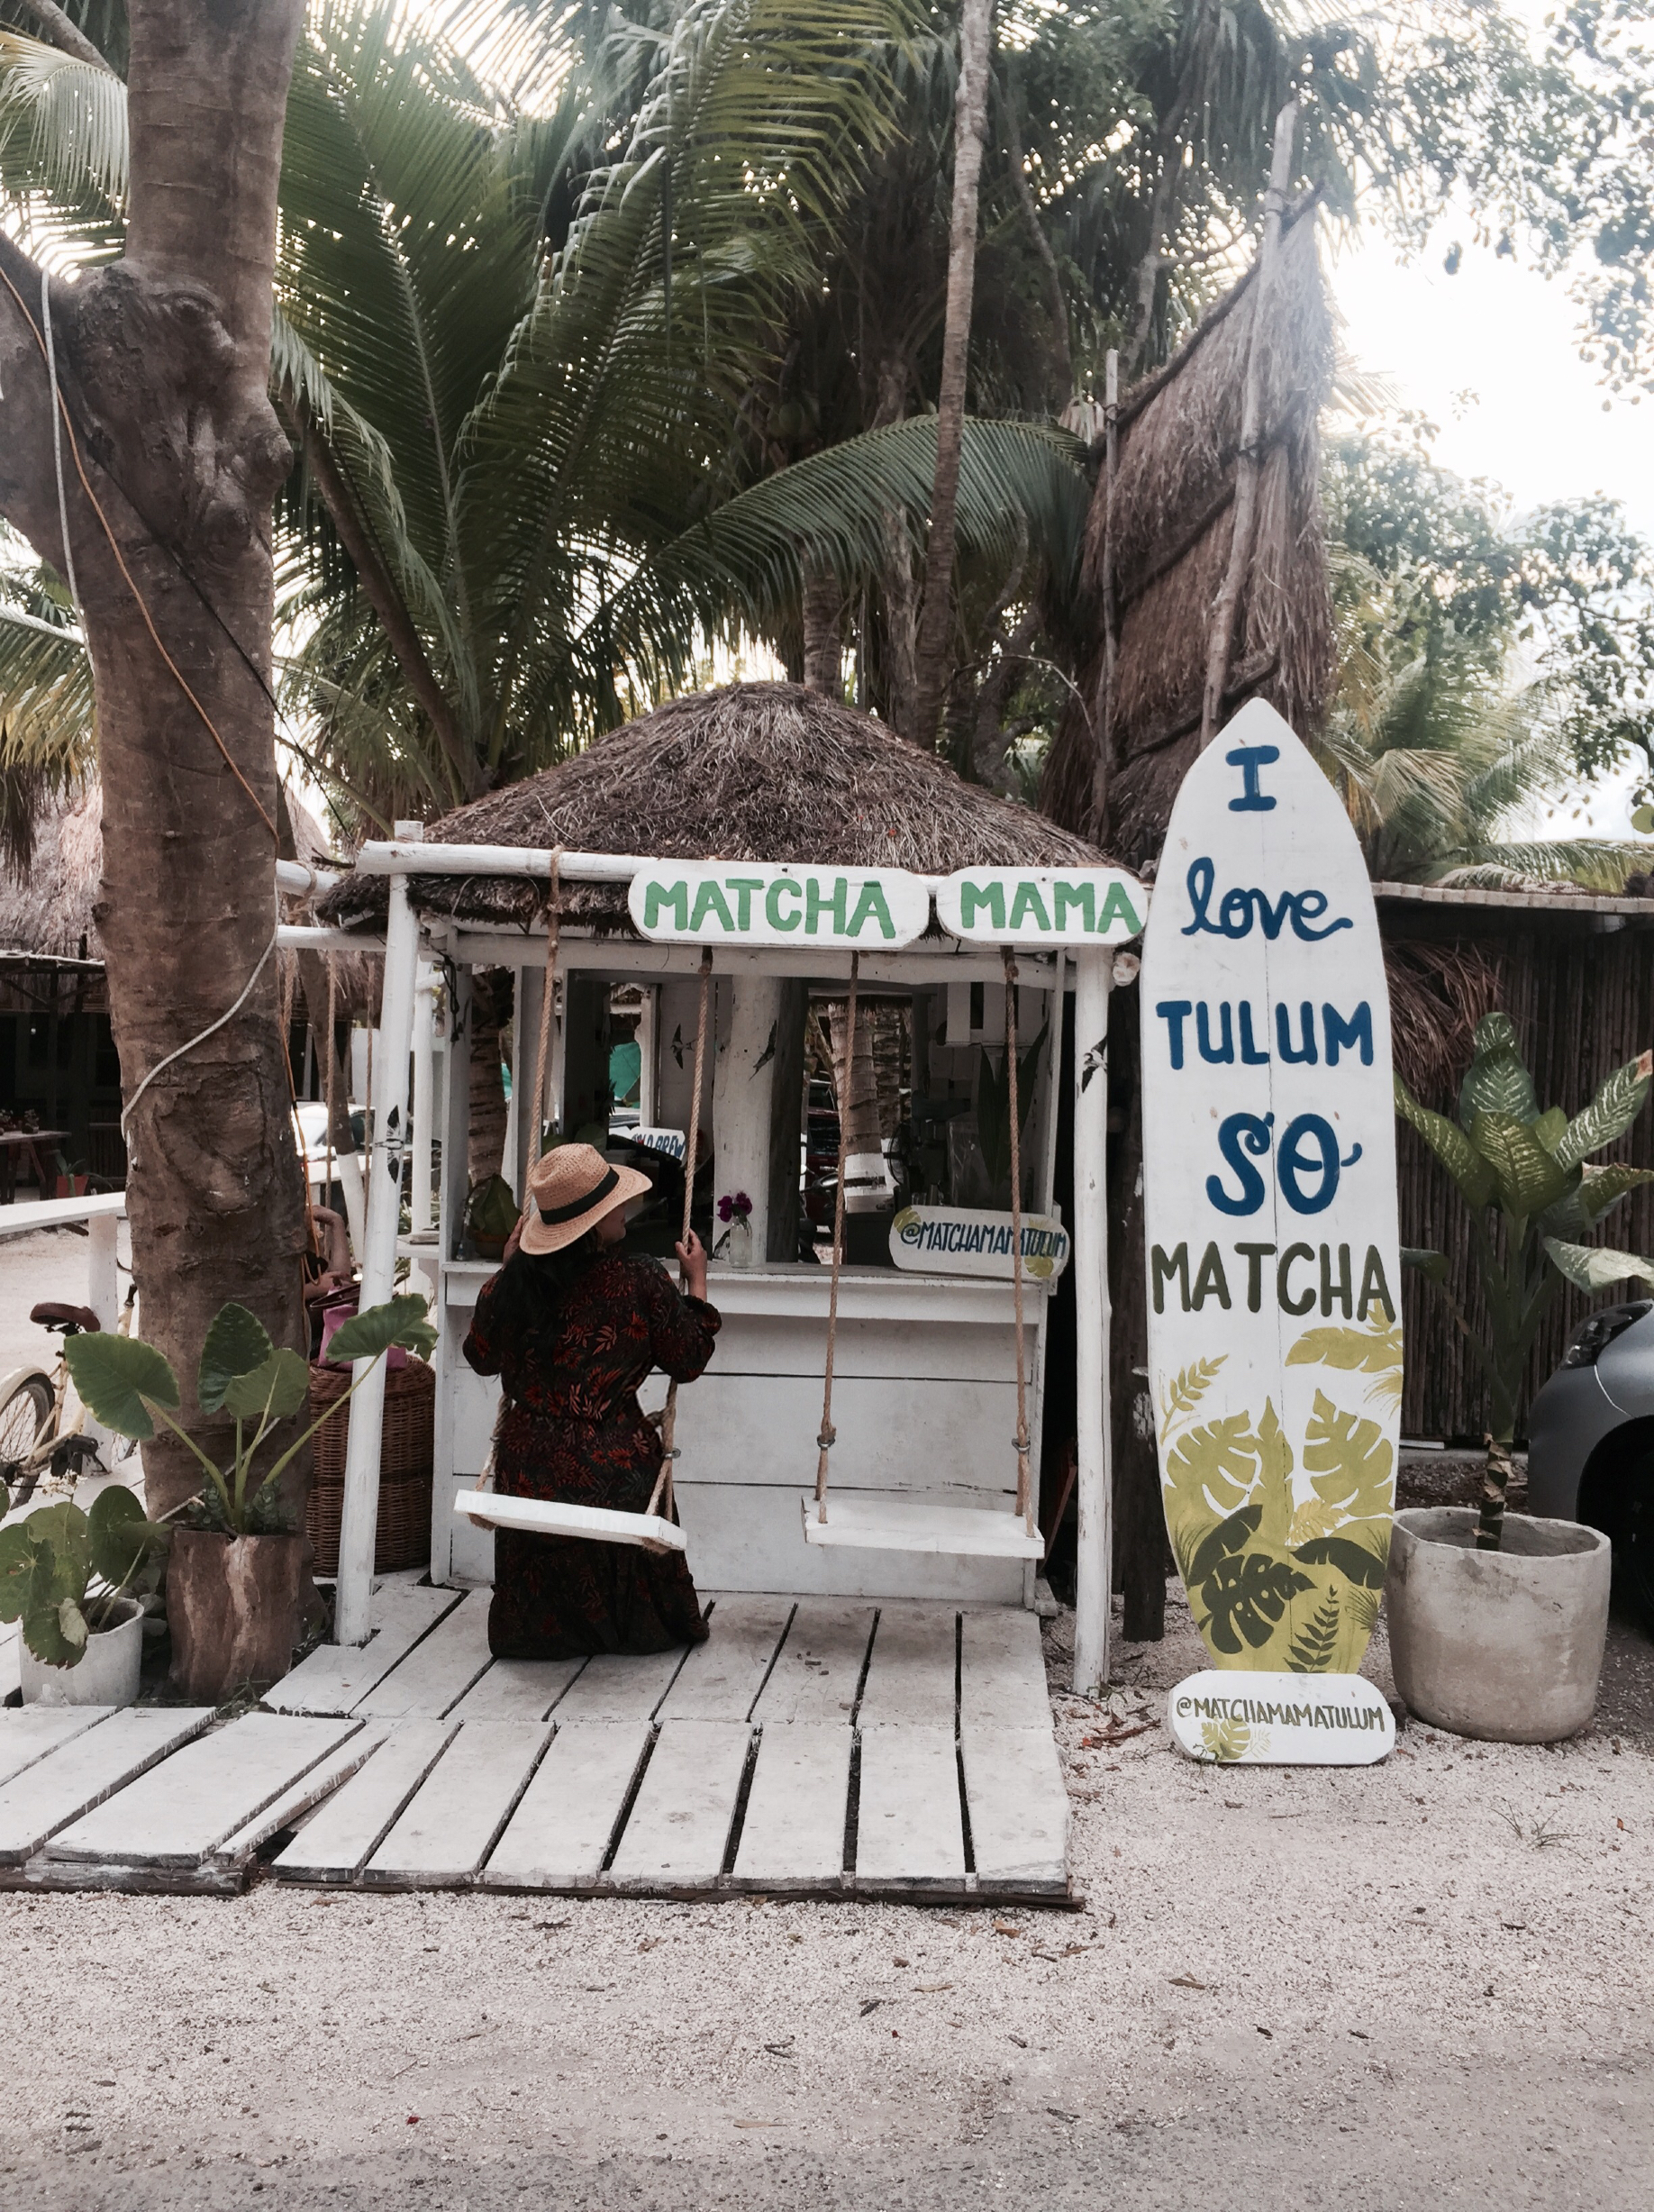 TULUM - A bohemian vibing town full of quaint shops & amazing design.You will easily fall in love with Tulum and will never want to leave. Truly a magical place!#takemebacktotulum